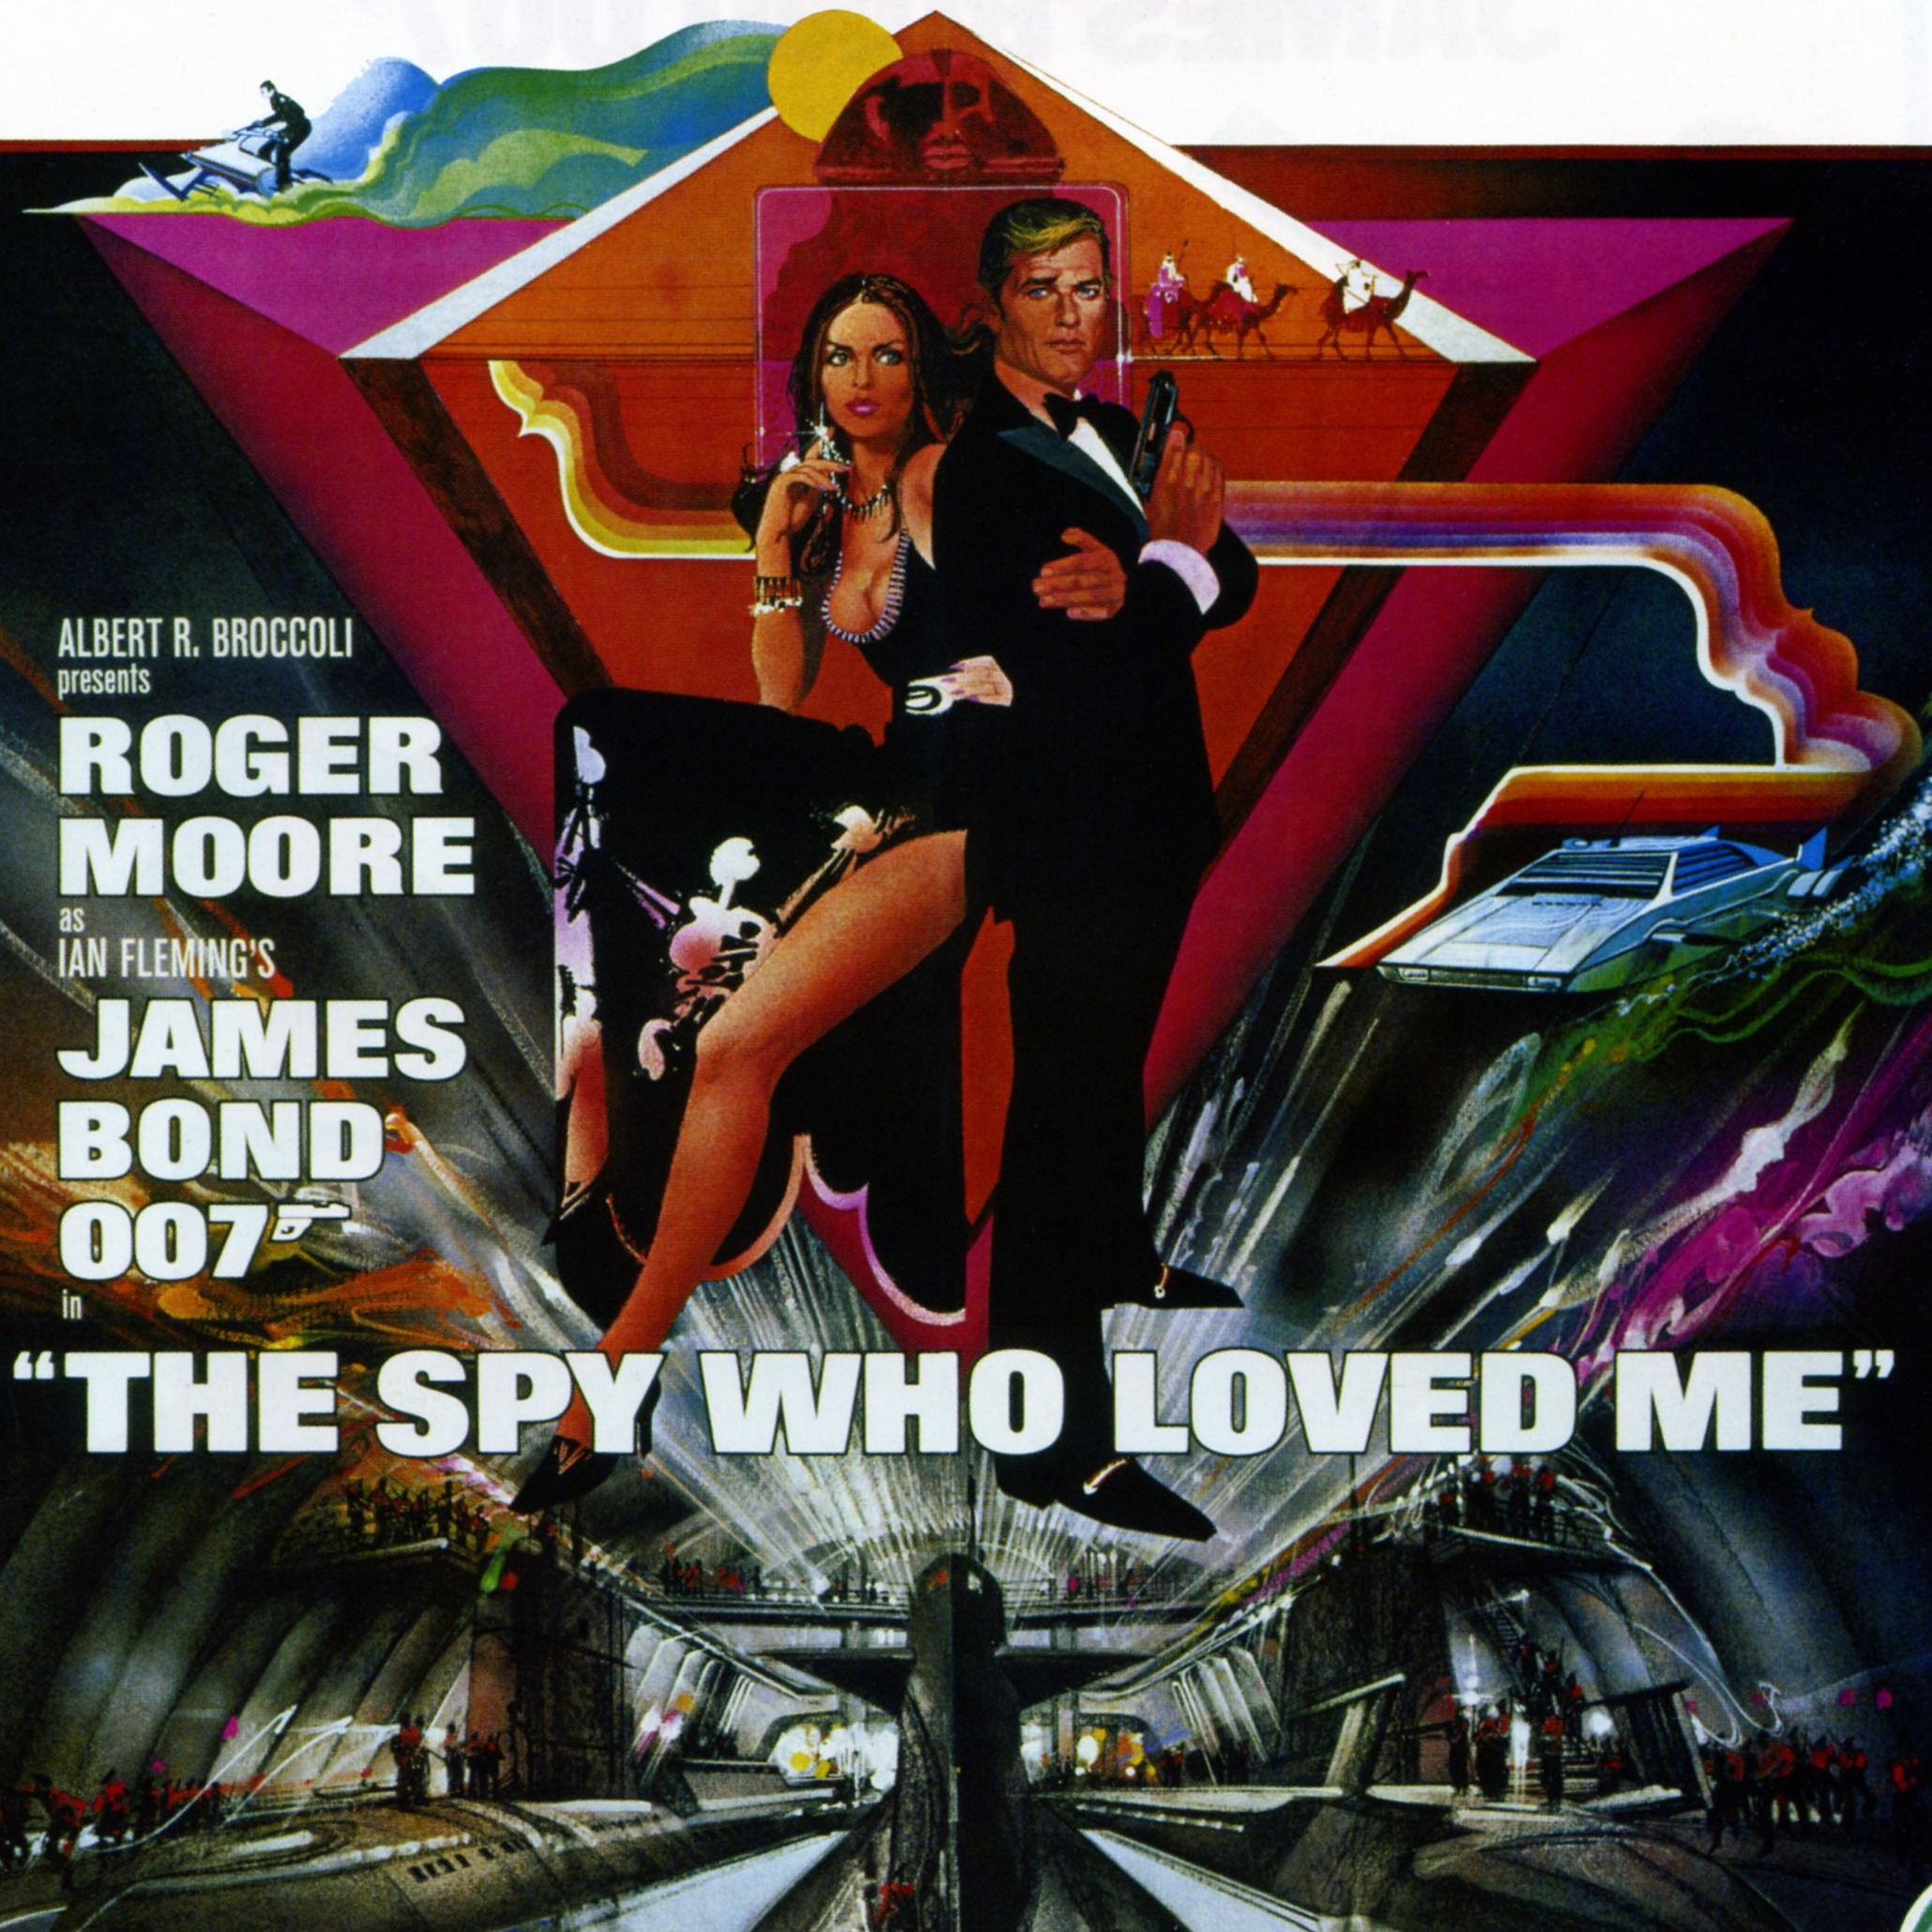 SAGA JAMES BOND #12 | L'ESPION QUI M'AIMAIT (The Spy Who Loved Me)